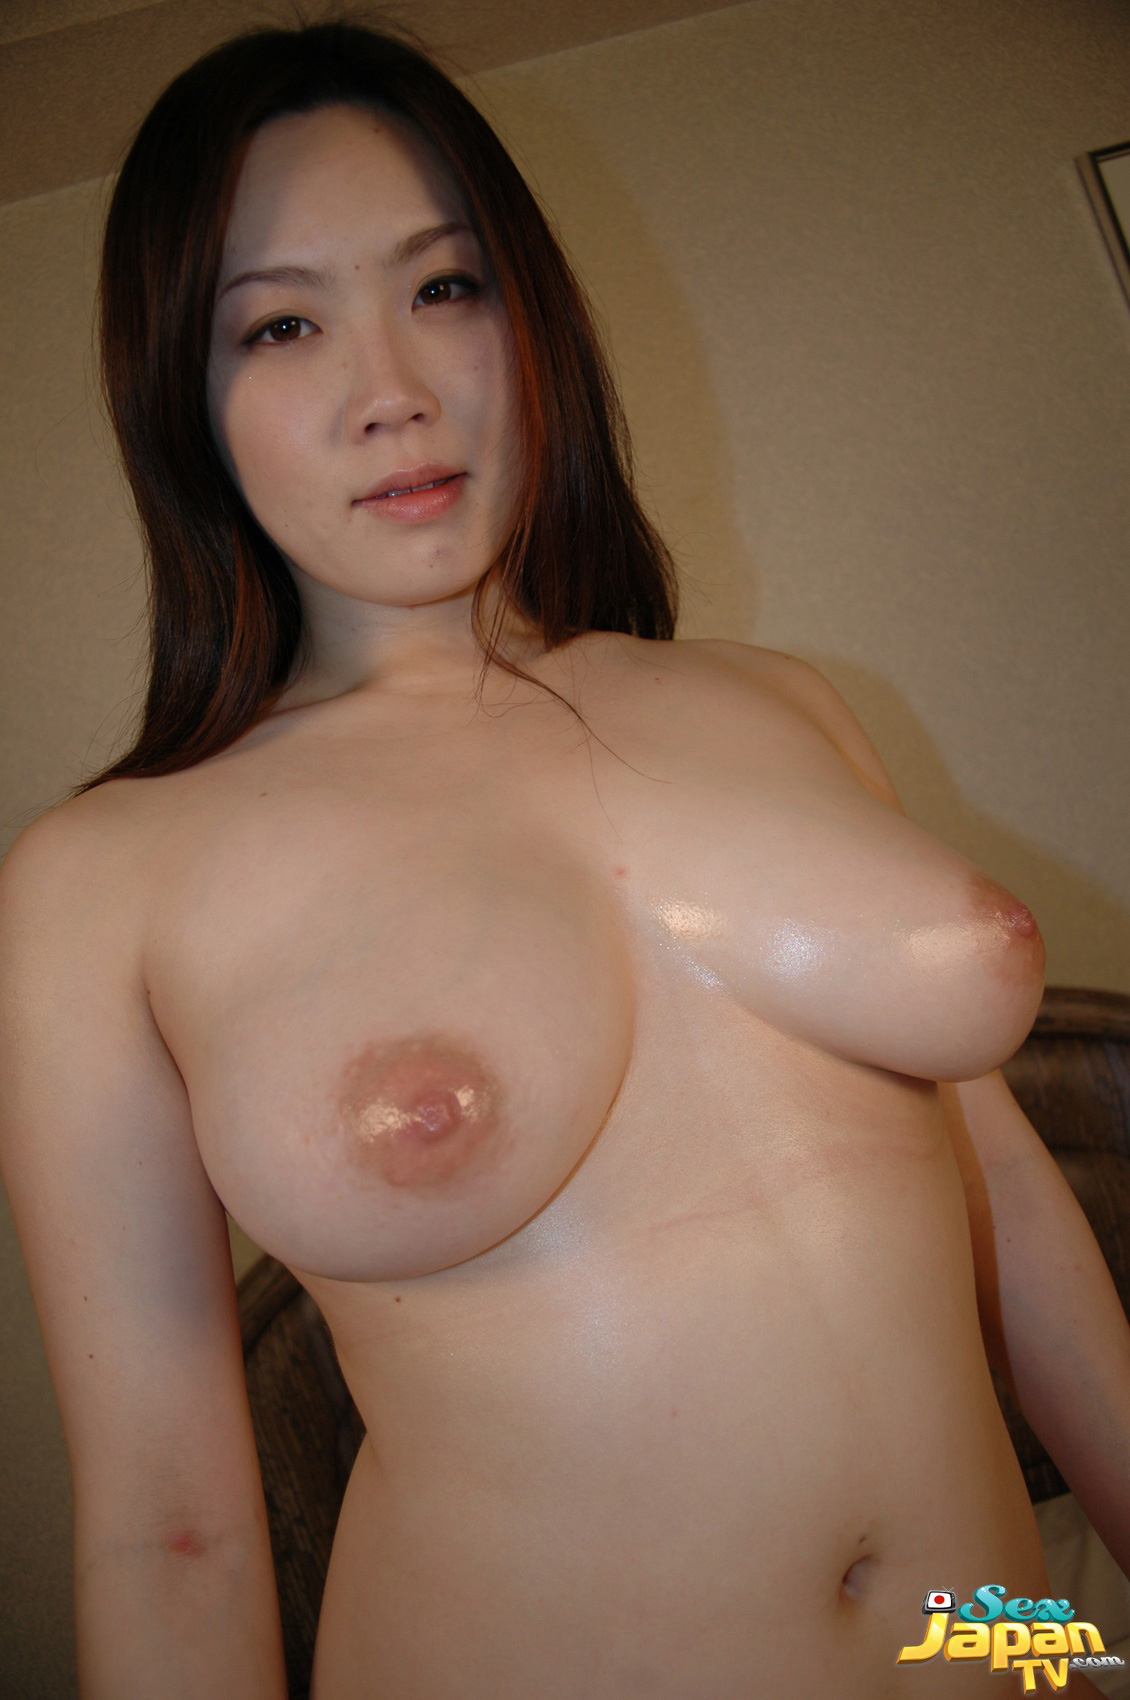 Asians with big tits porn